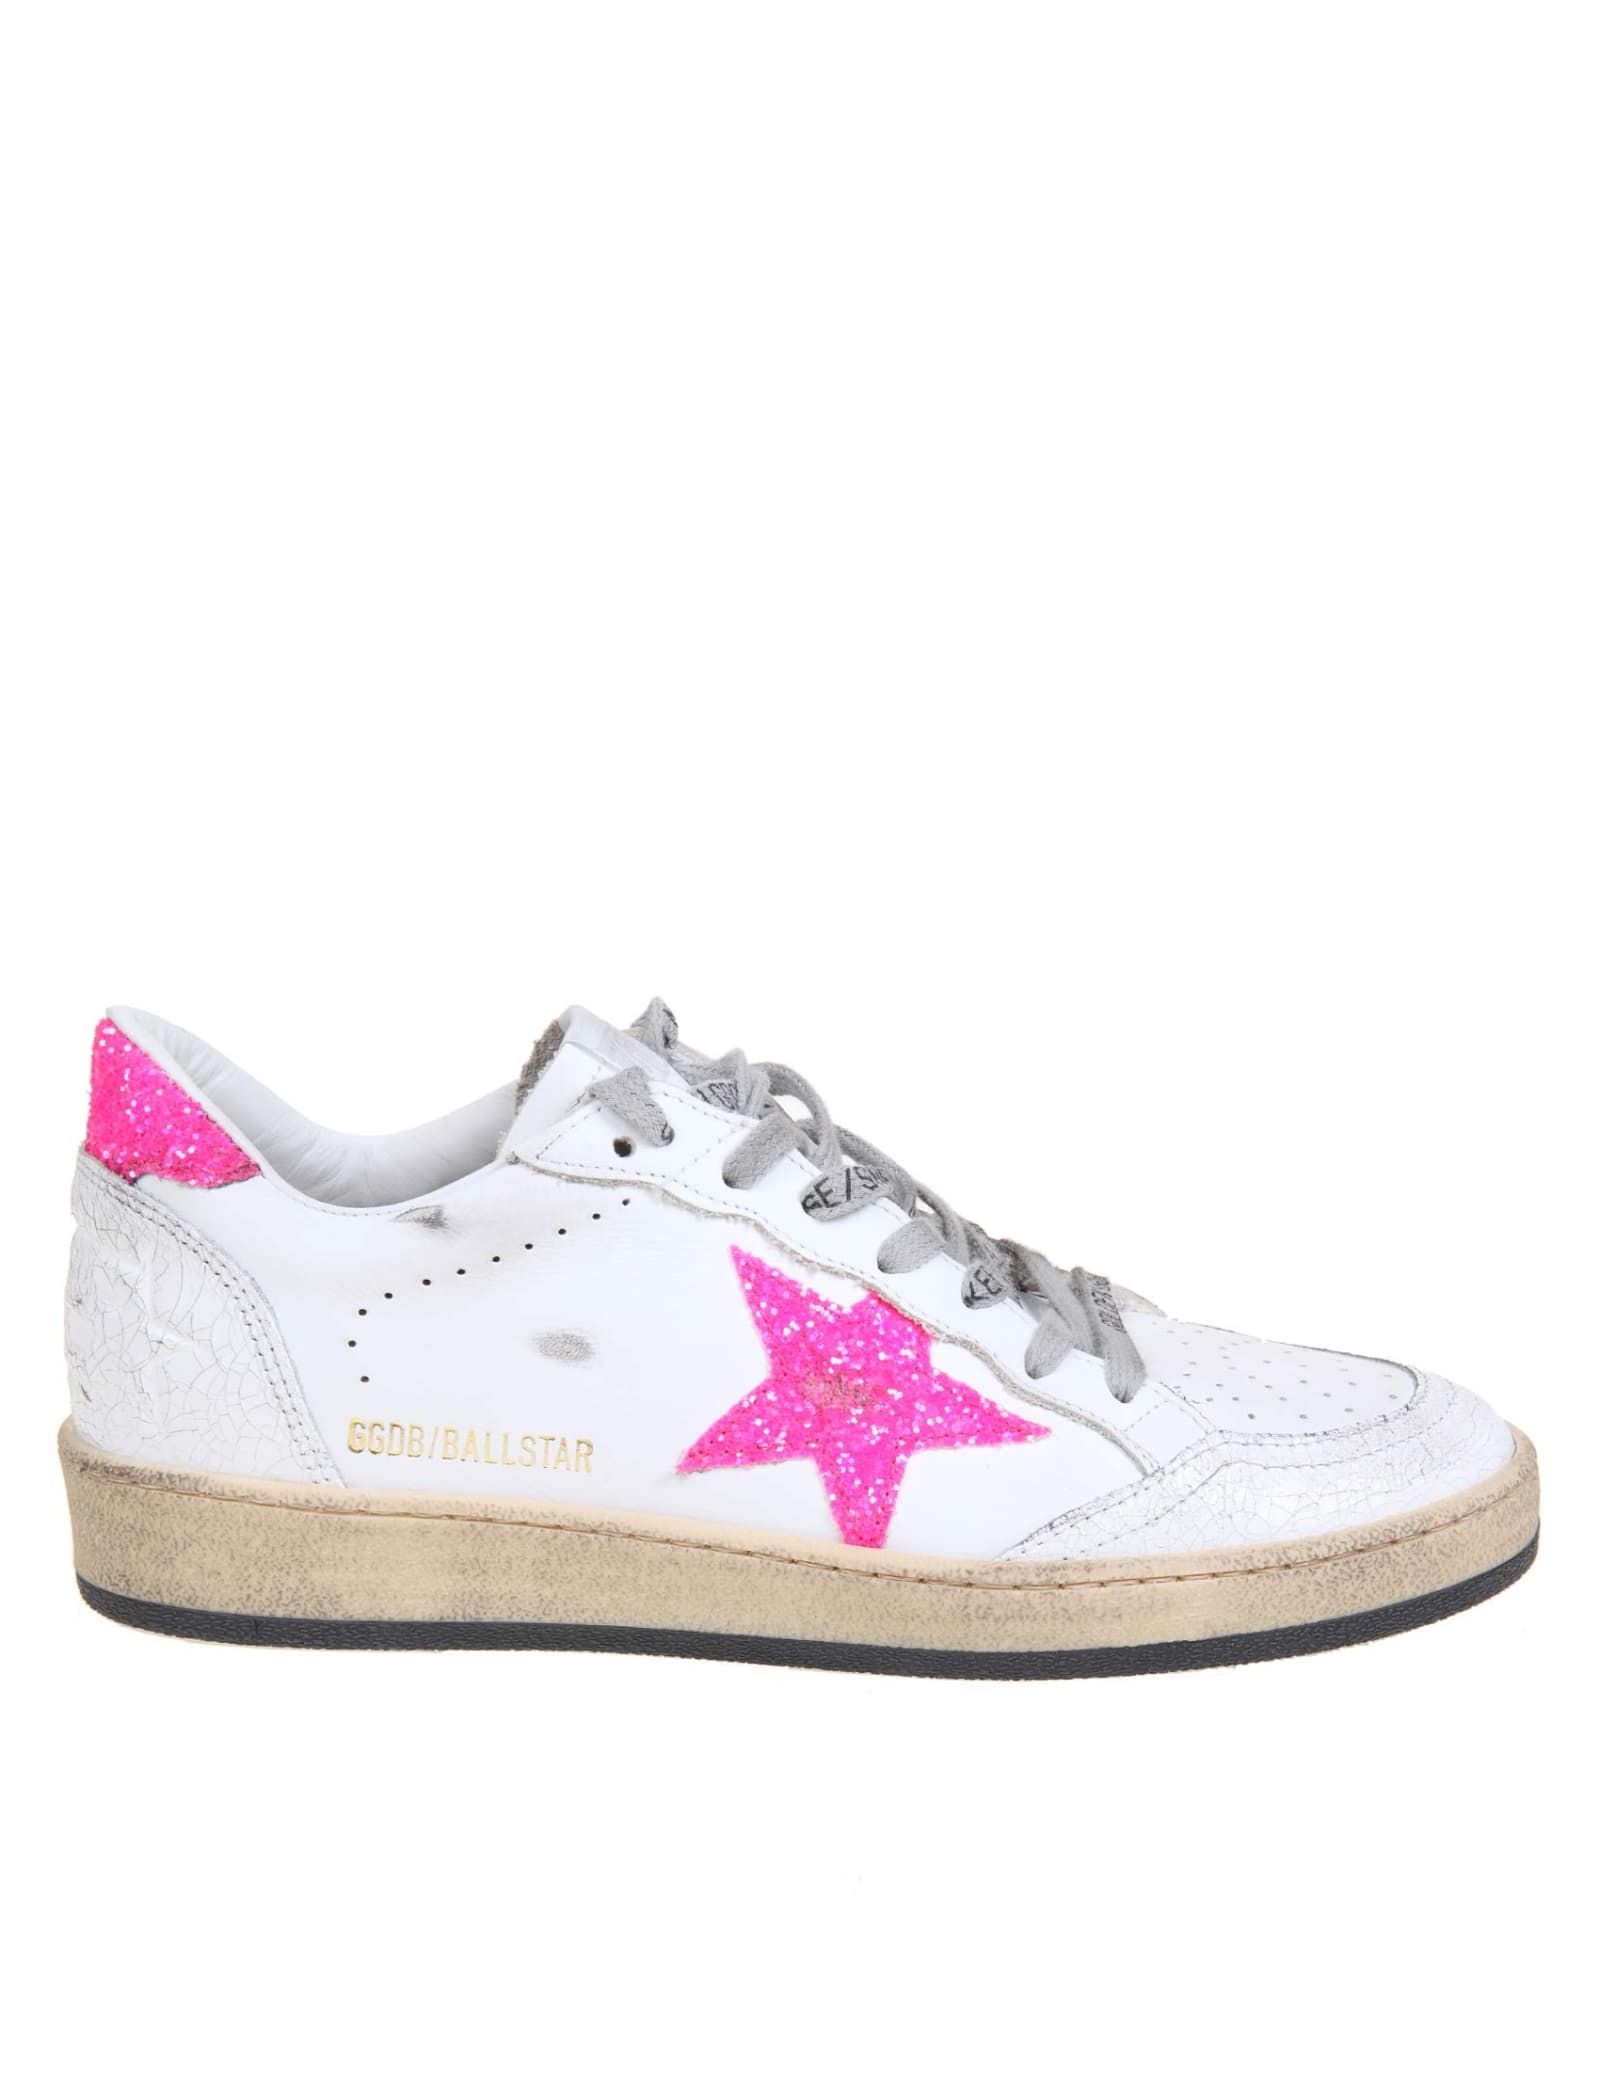 Buy Golden Goose Ballstar Sneakers In White Leather online, shop Golden Goose shoes with free shipping